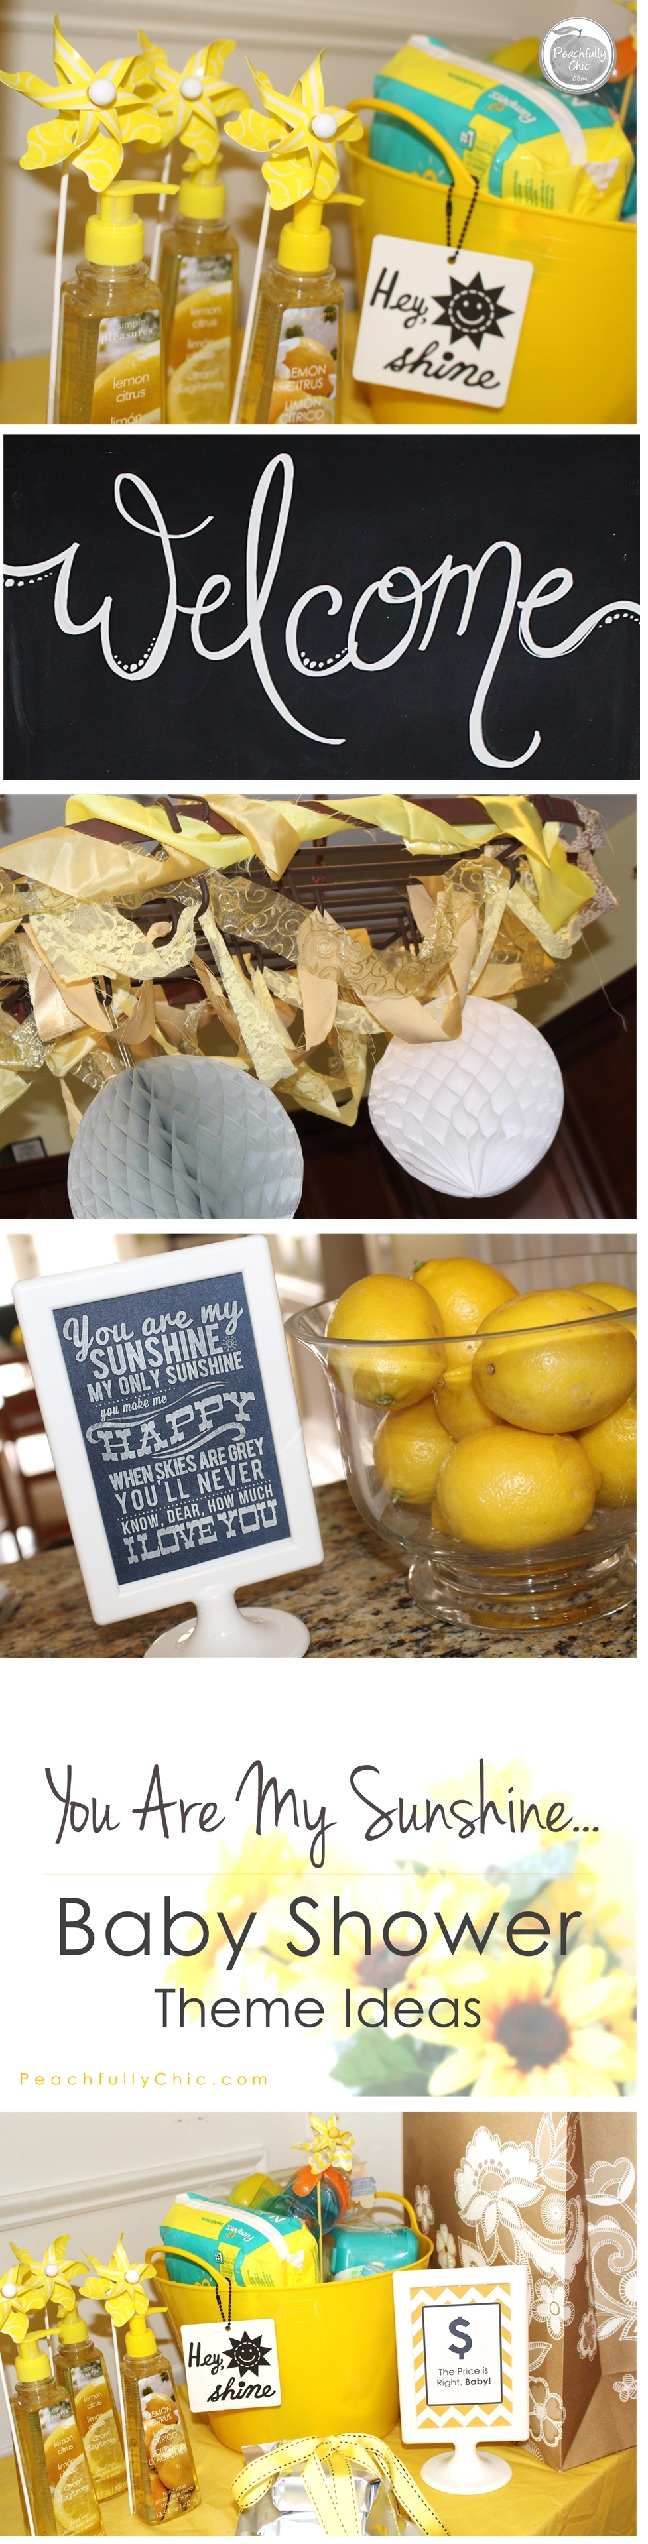 ... Peachfully Chic You Are My Sunshine Baby Shower